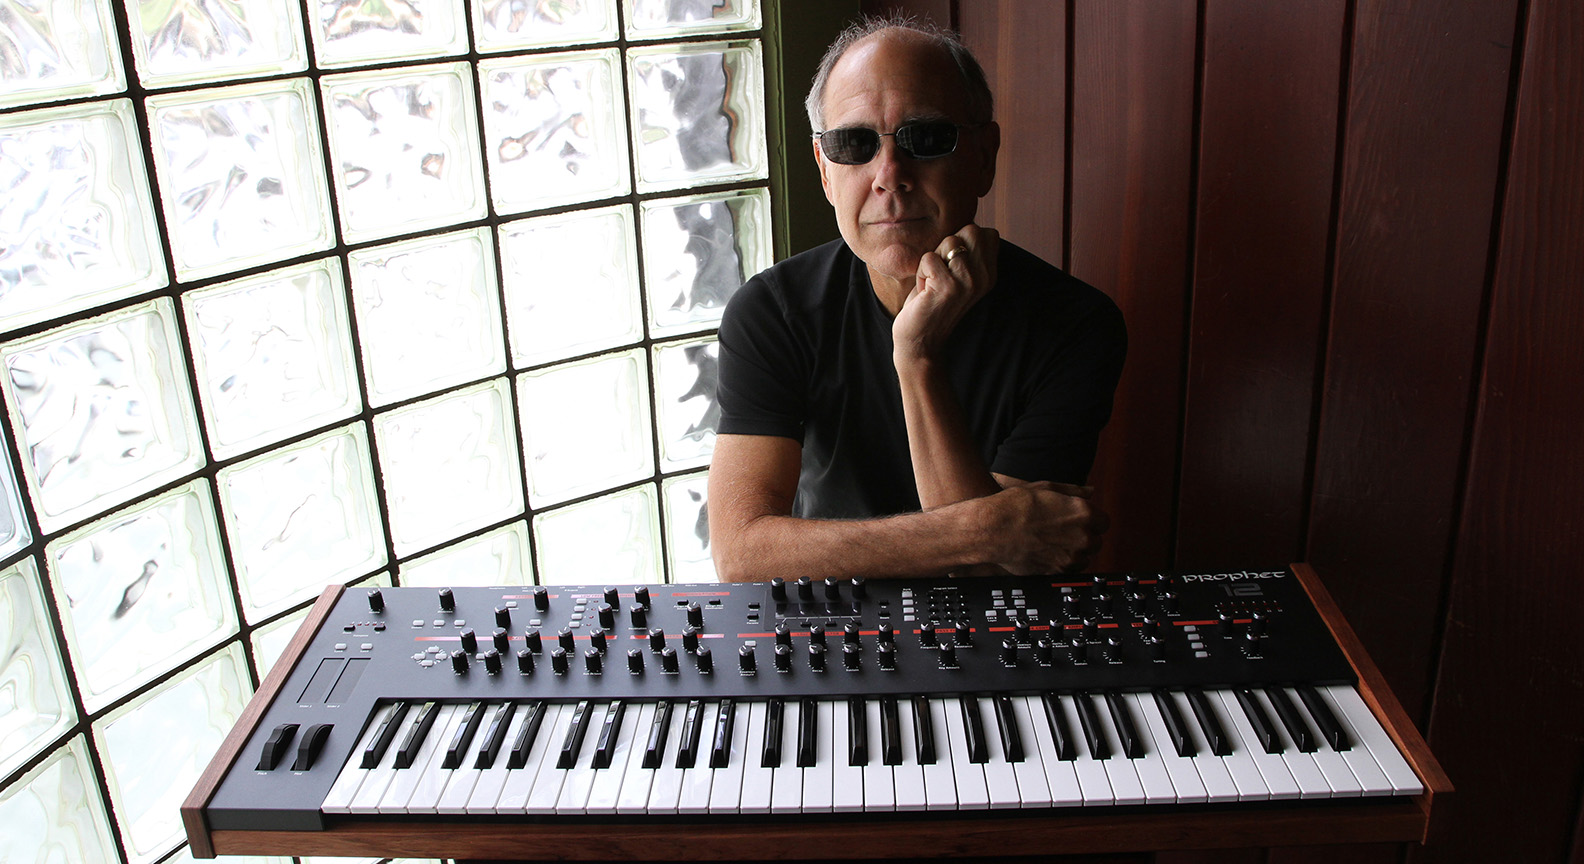 Dave Smith posing by a MIDI keyboard in front of a large window.